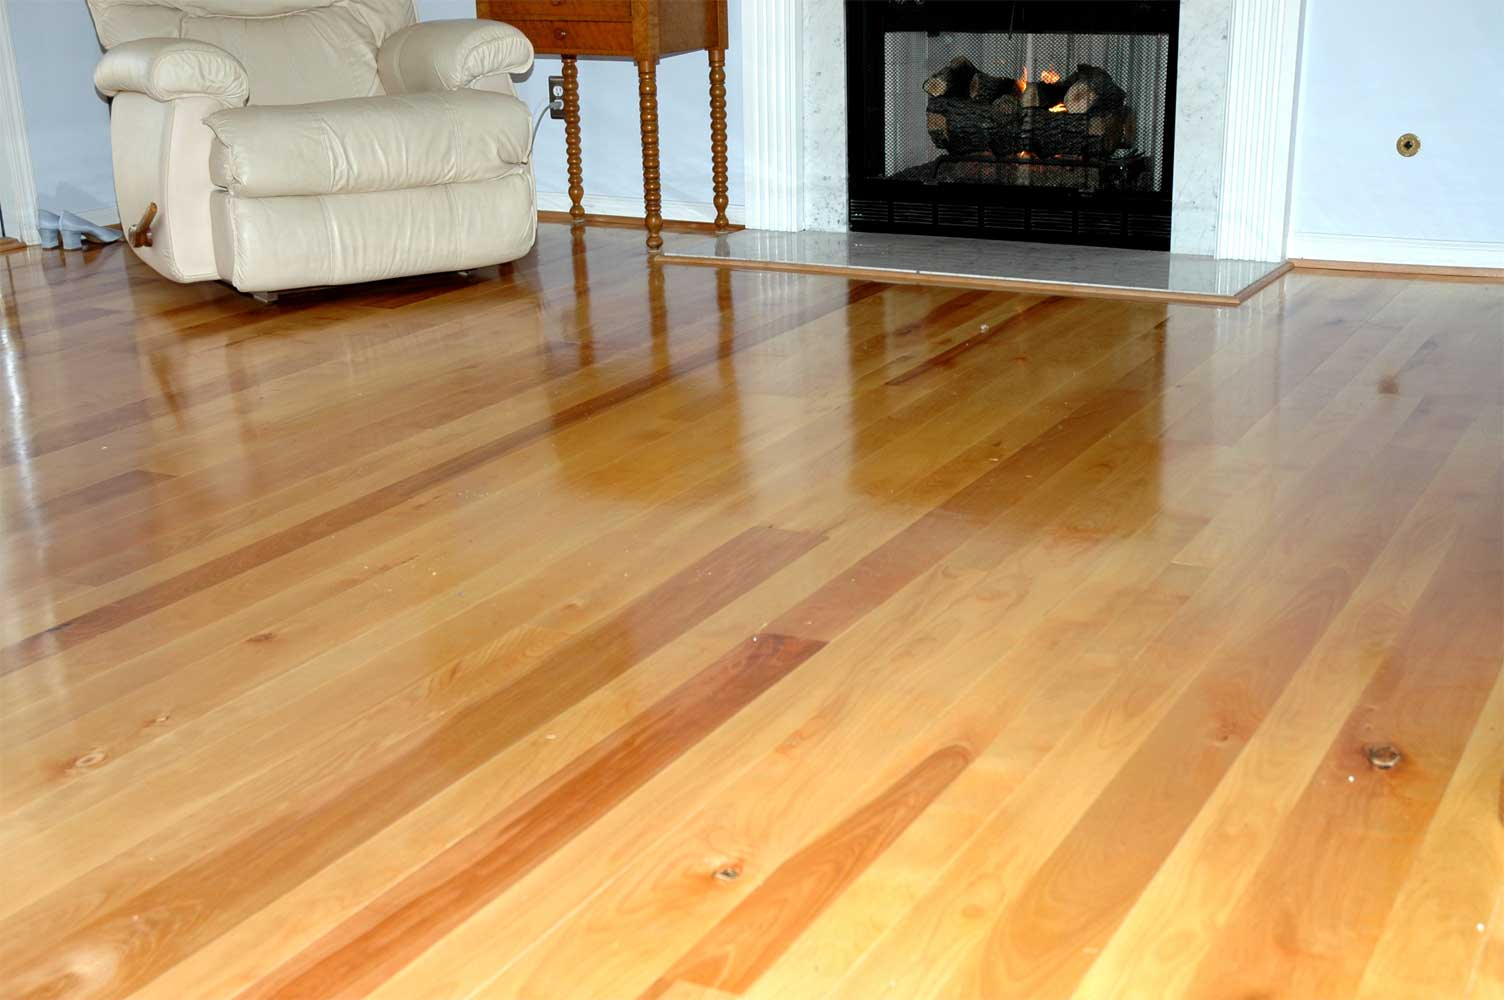 Flooring Tamarack Vs Birch Any Thoughts